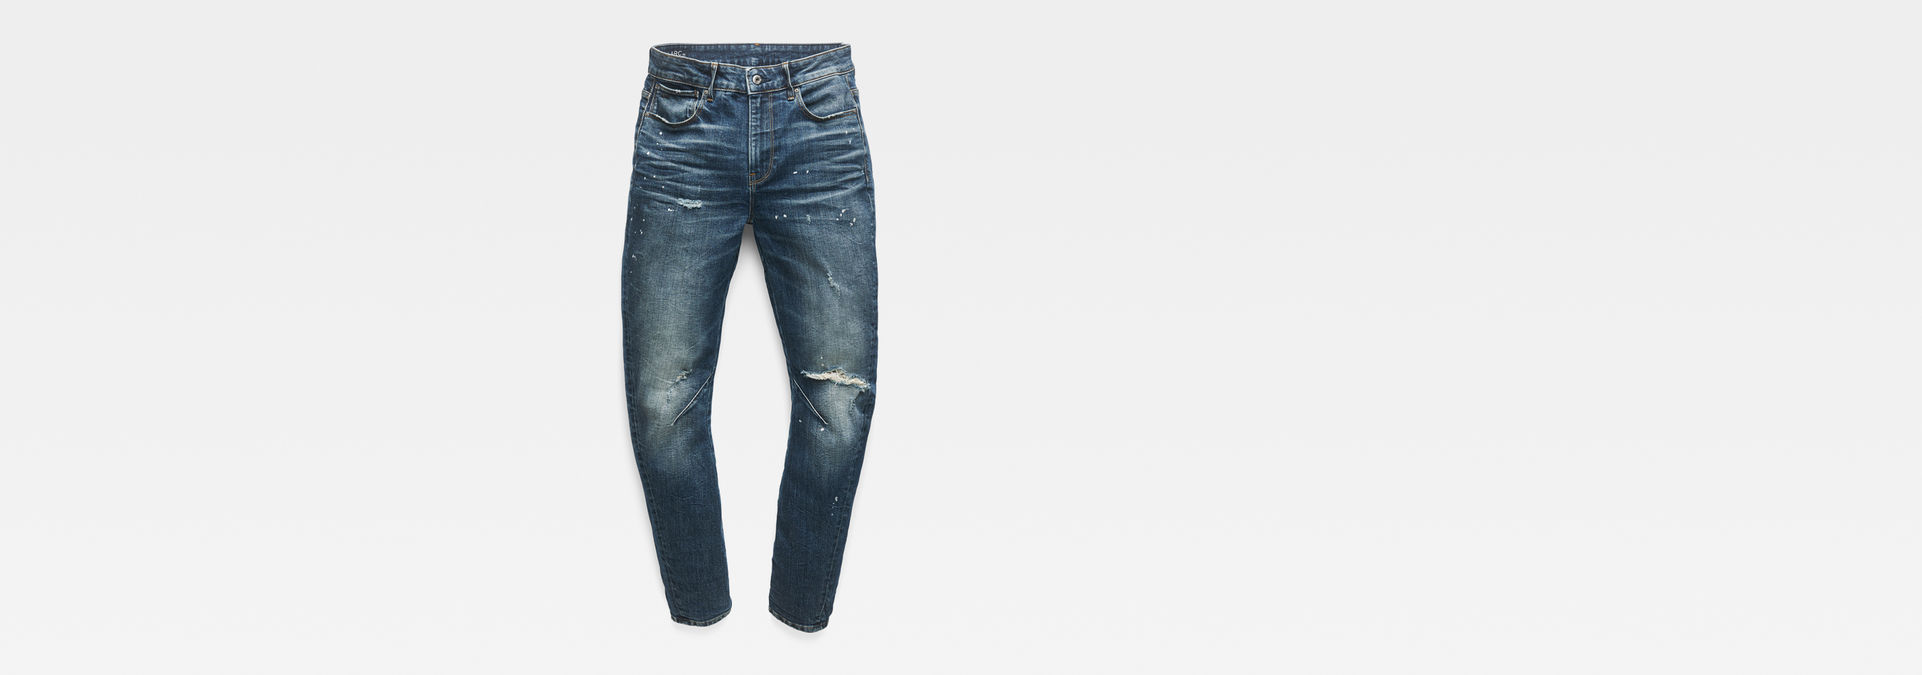 Arc 2.0 Boyfriend Jeans | Dark Aged Painted Destroy | G Star